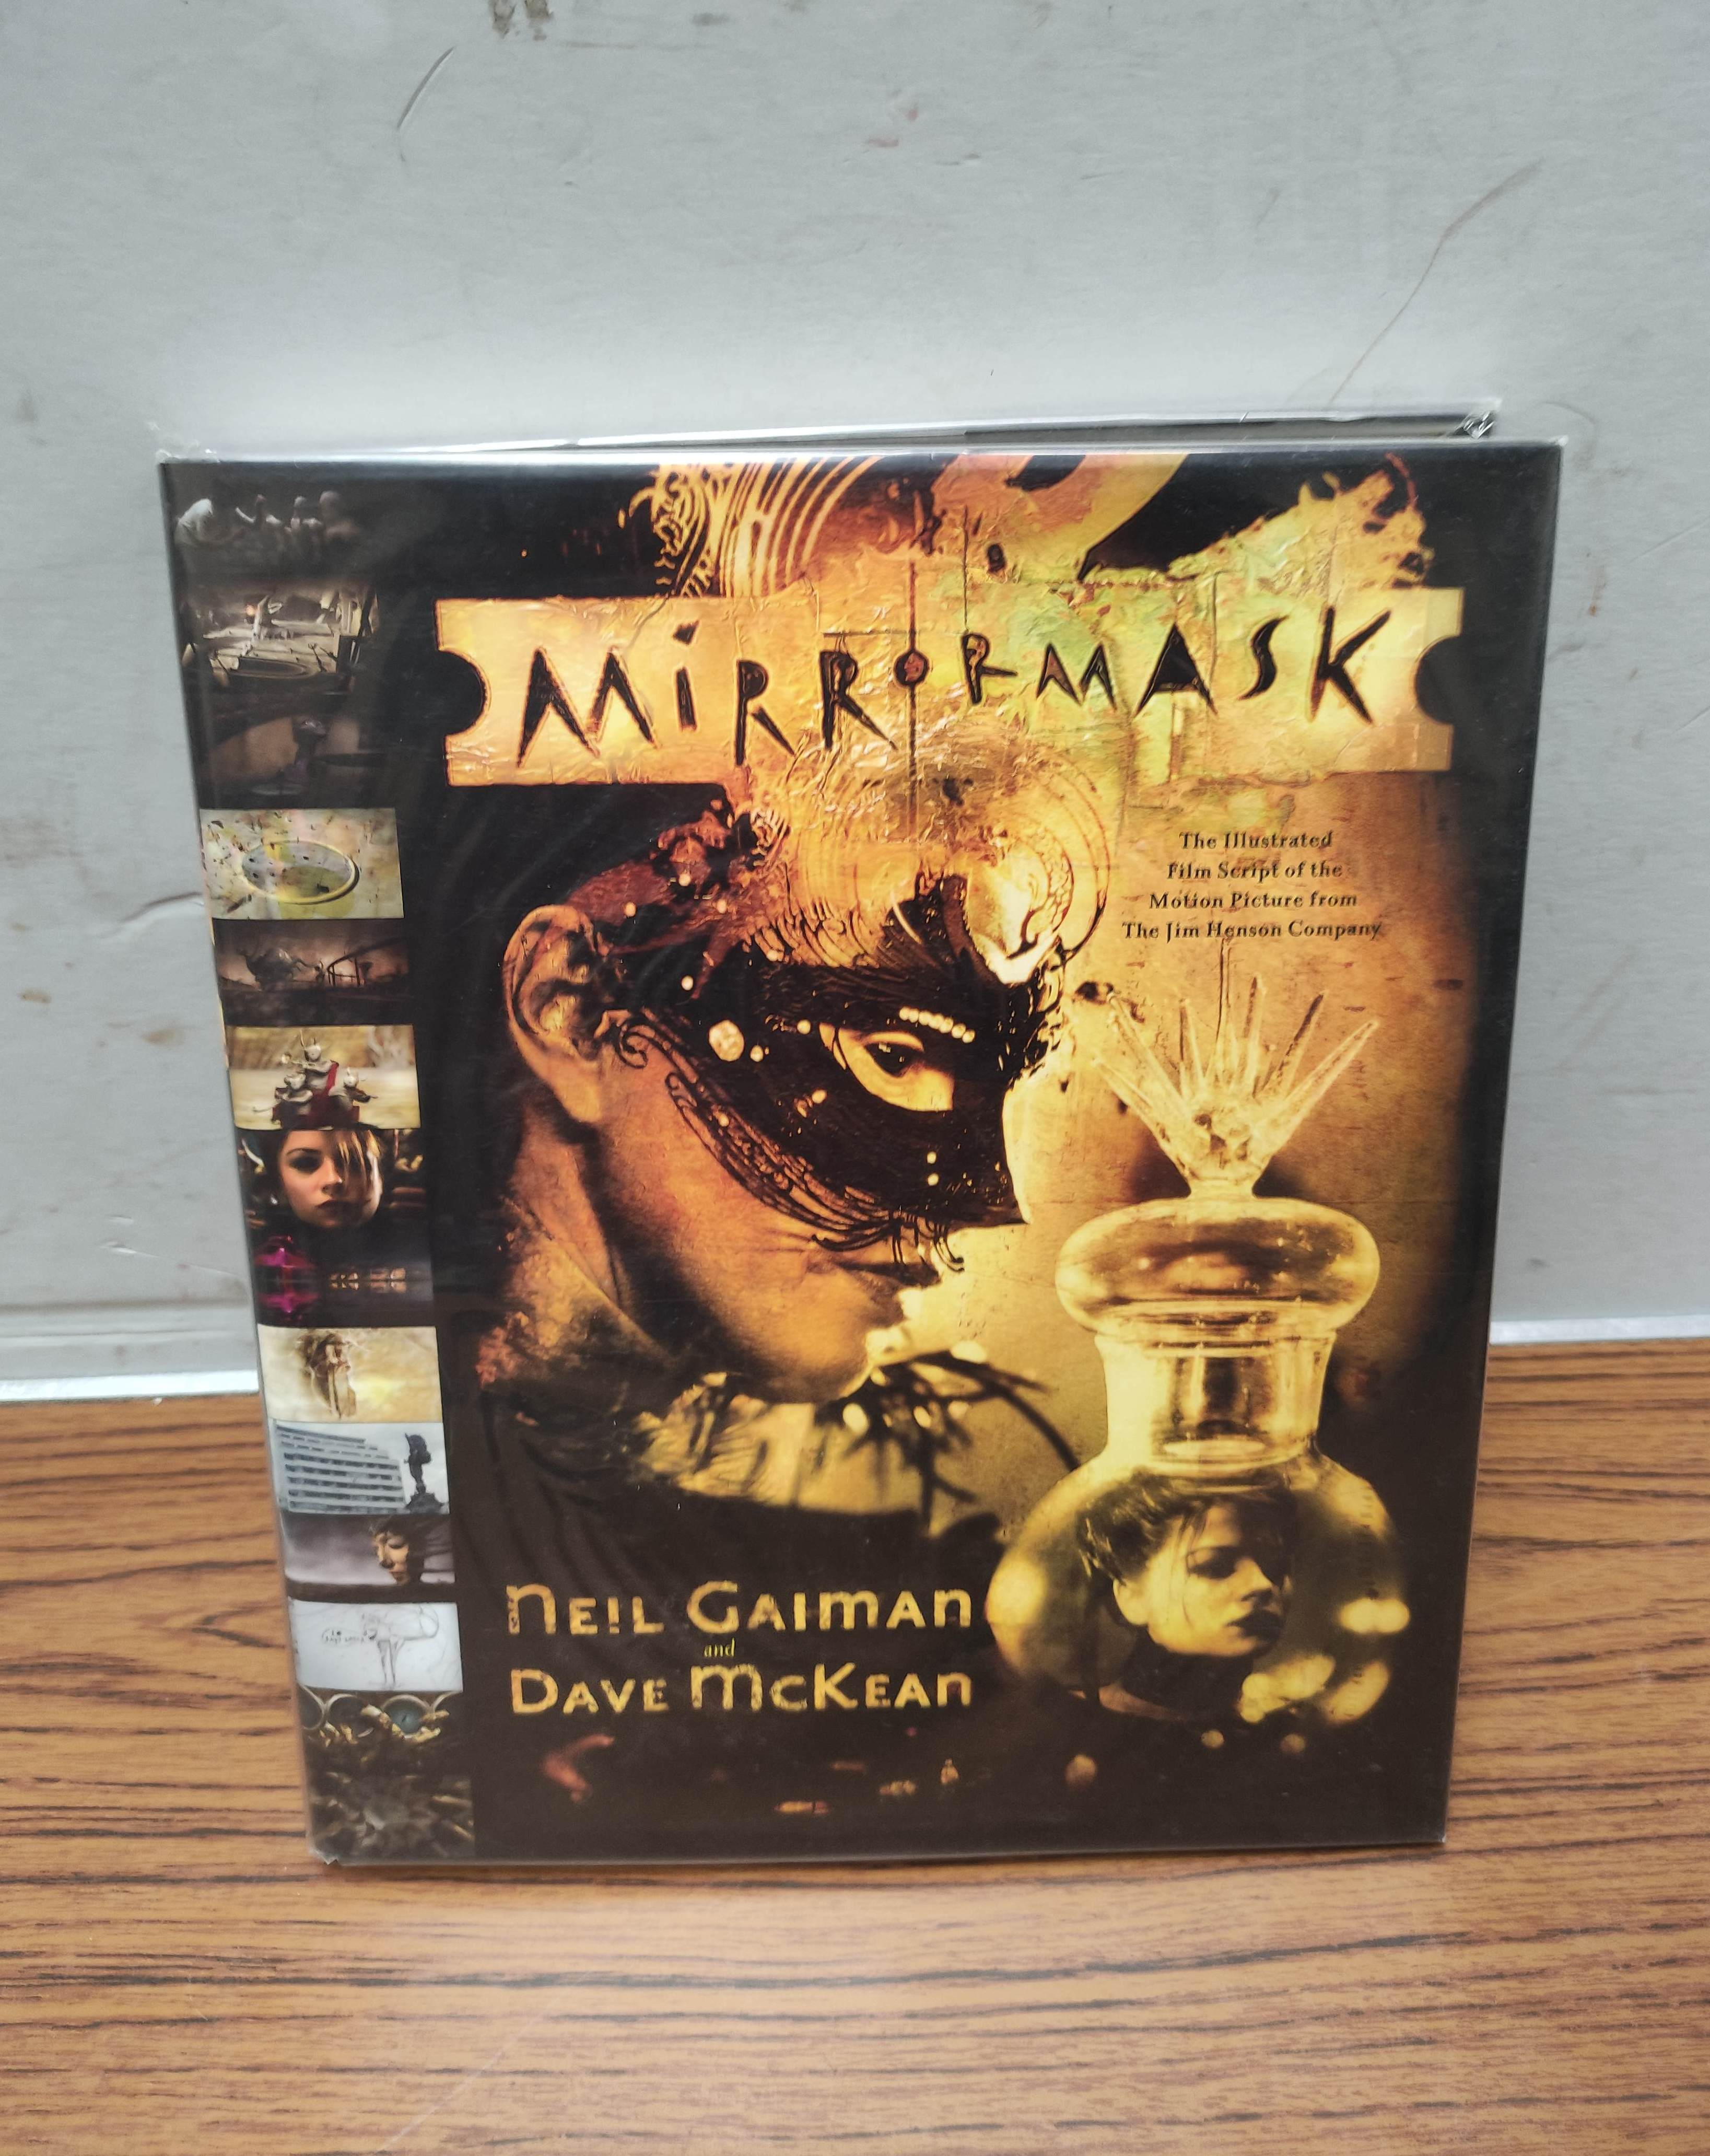 GAIMAN NEIL.The Sandman. Vols. 1 to 10 in wrappers & slip case; also 5 others, Neil Gaiman. - Image 11 of 17